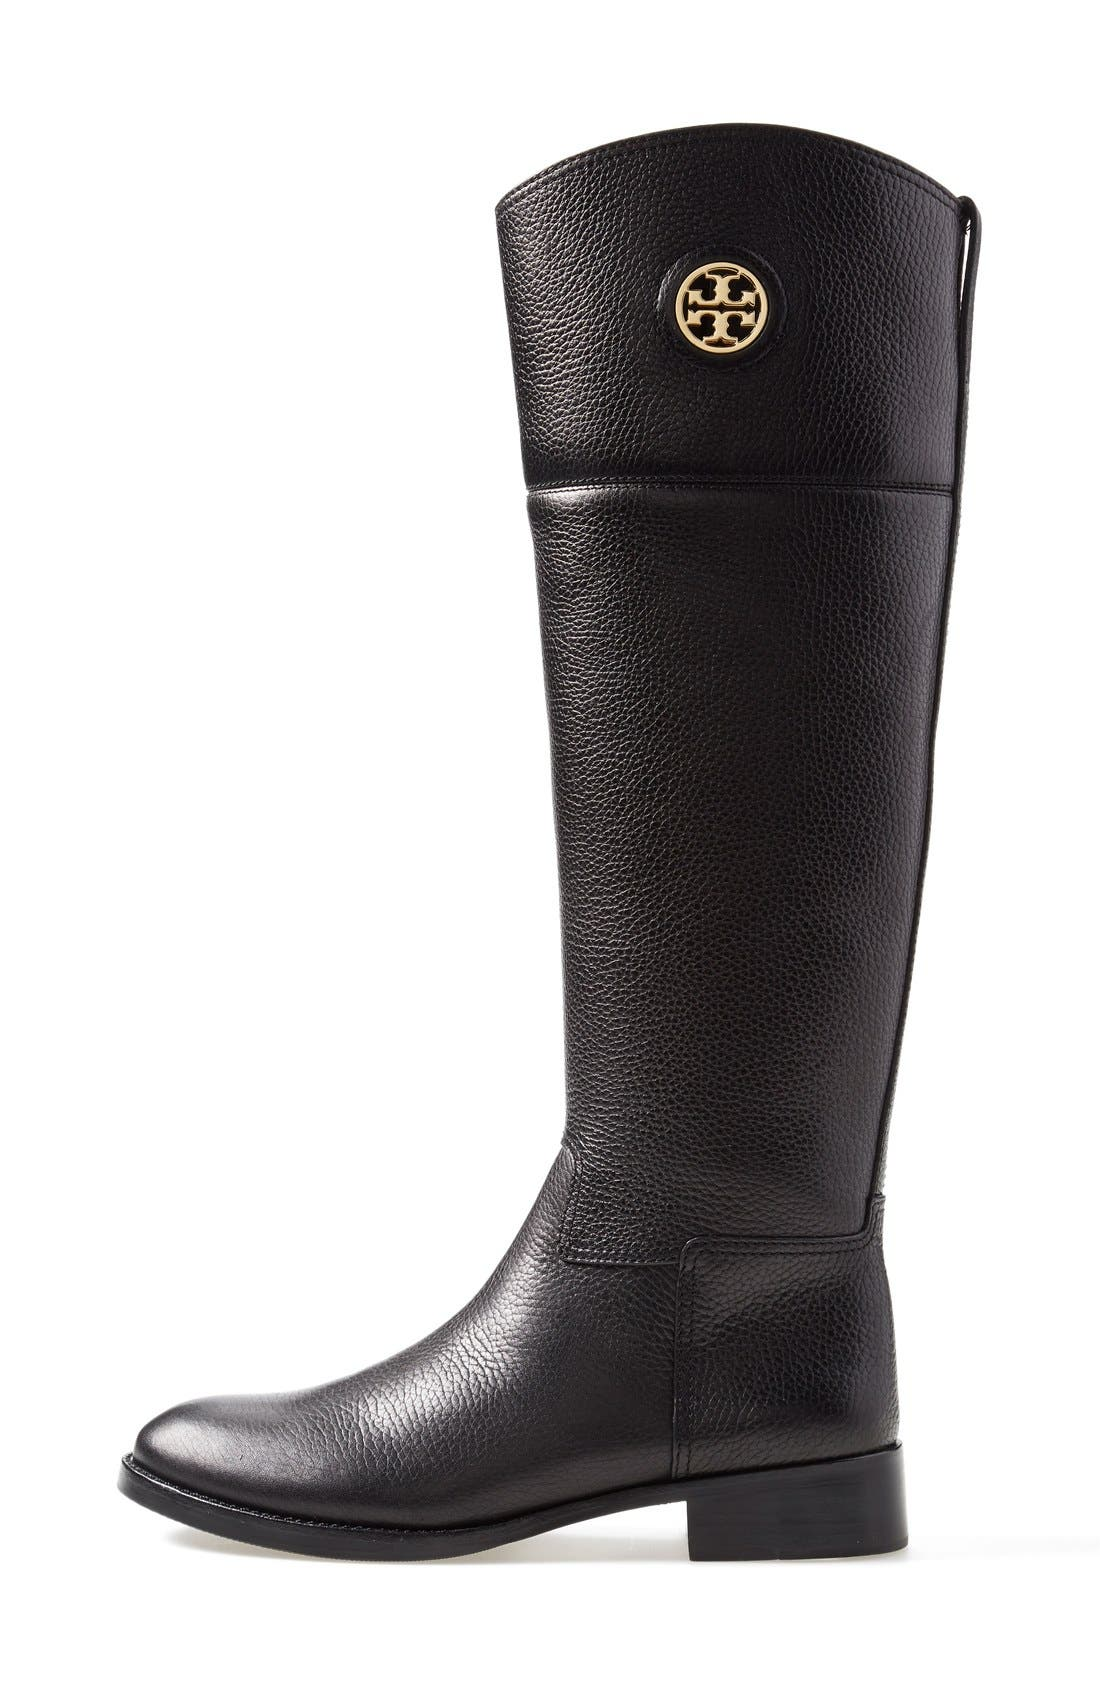 TORY BURCH,                             'Junction' Riding Boot,                             Alternate thumbnail 4, color,                             001